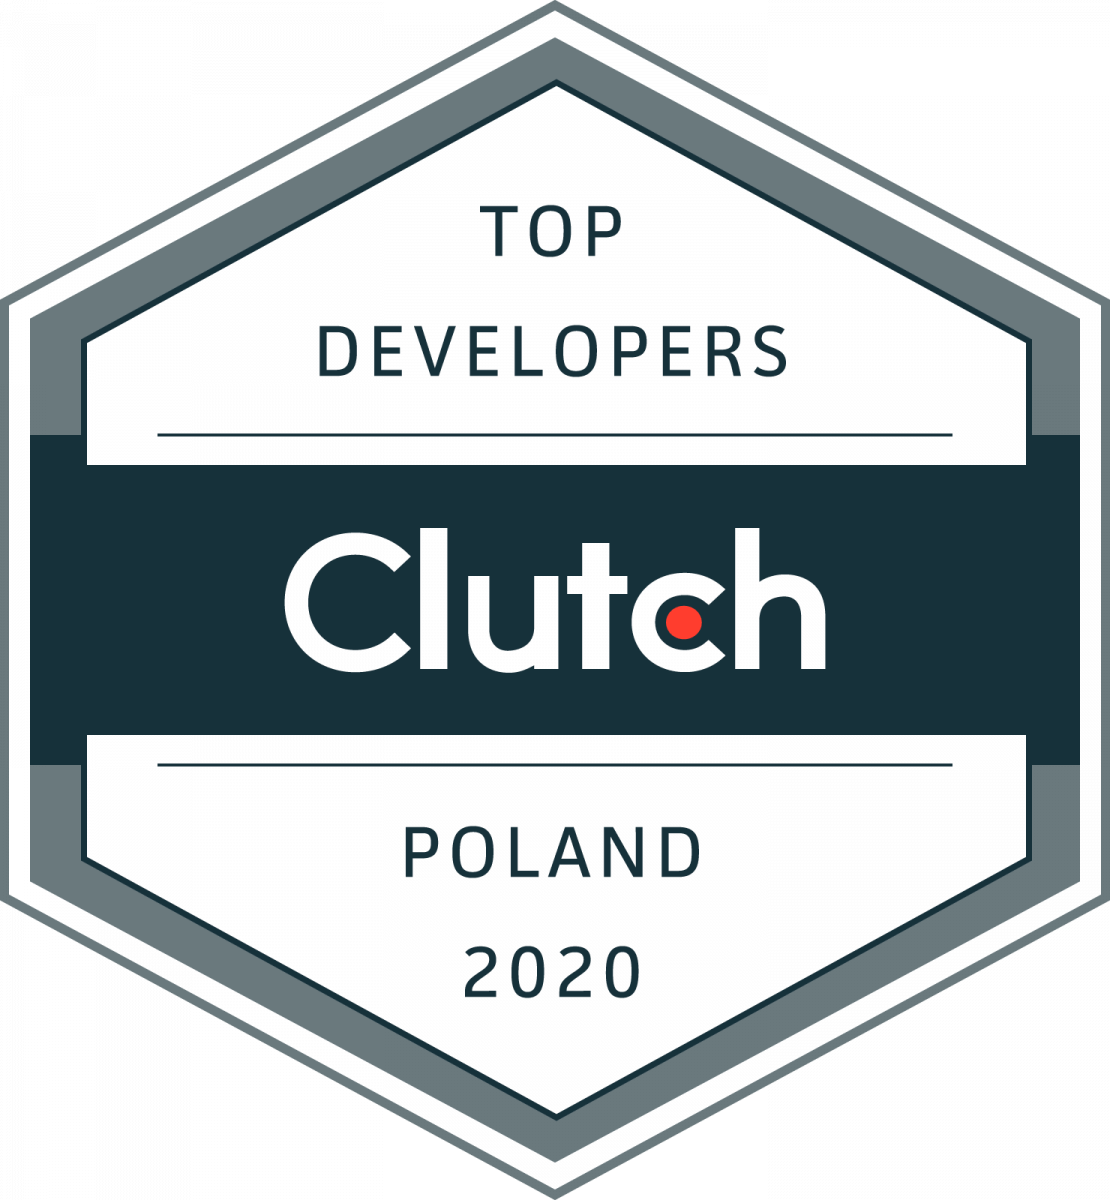 Top Developers Cluth